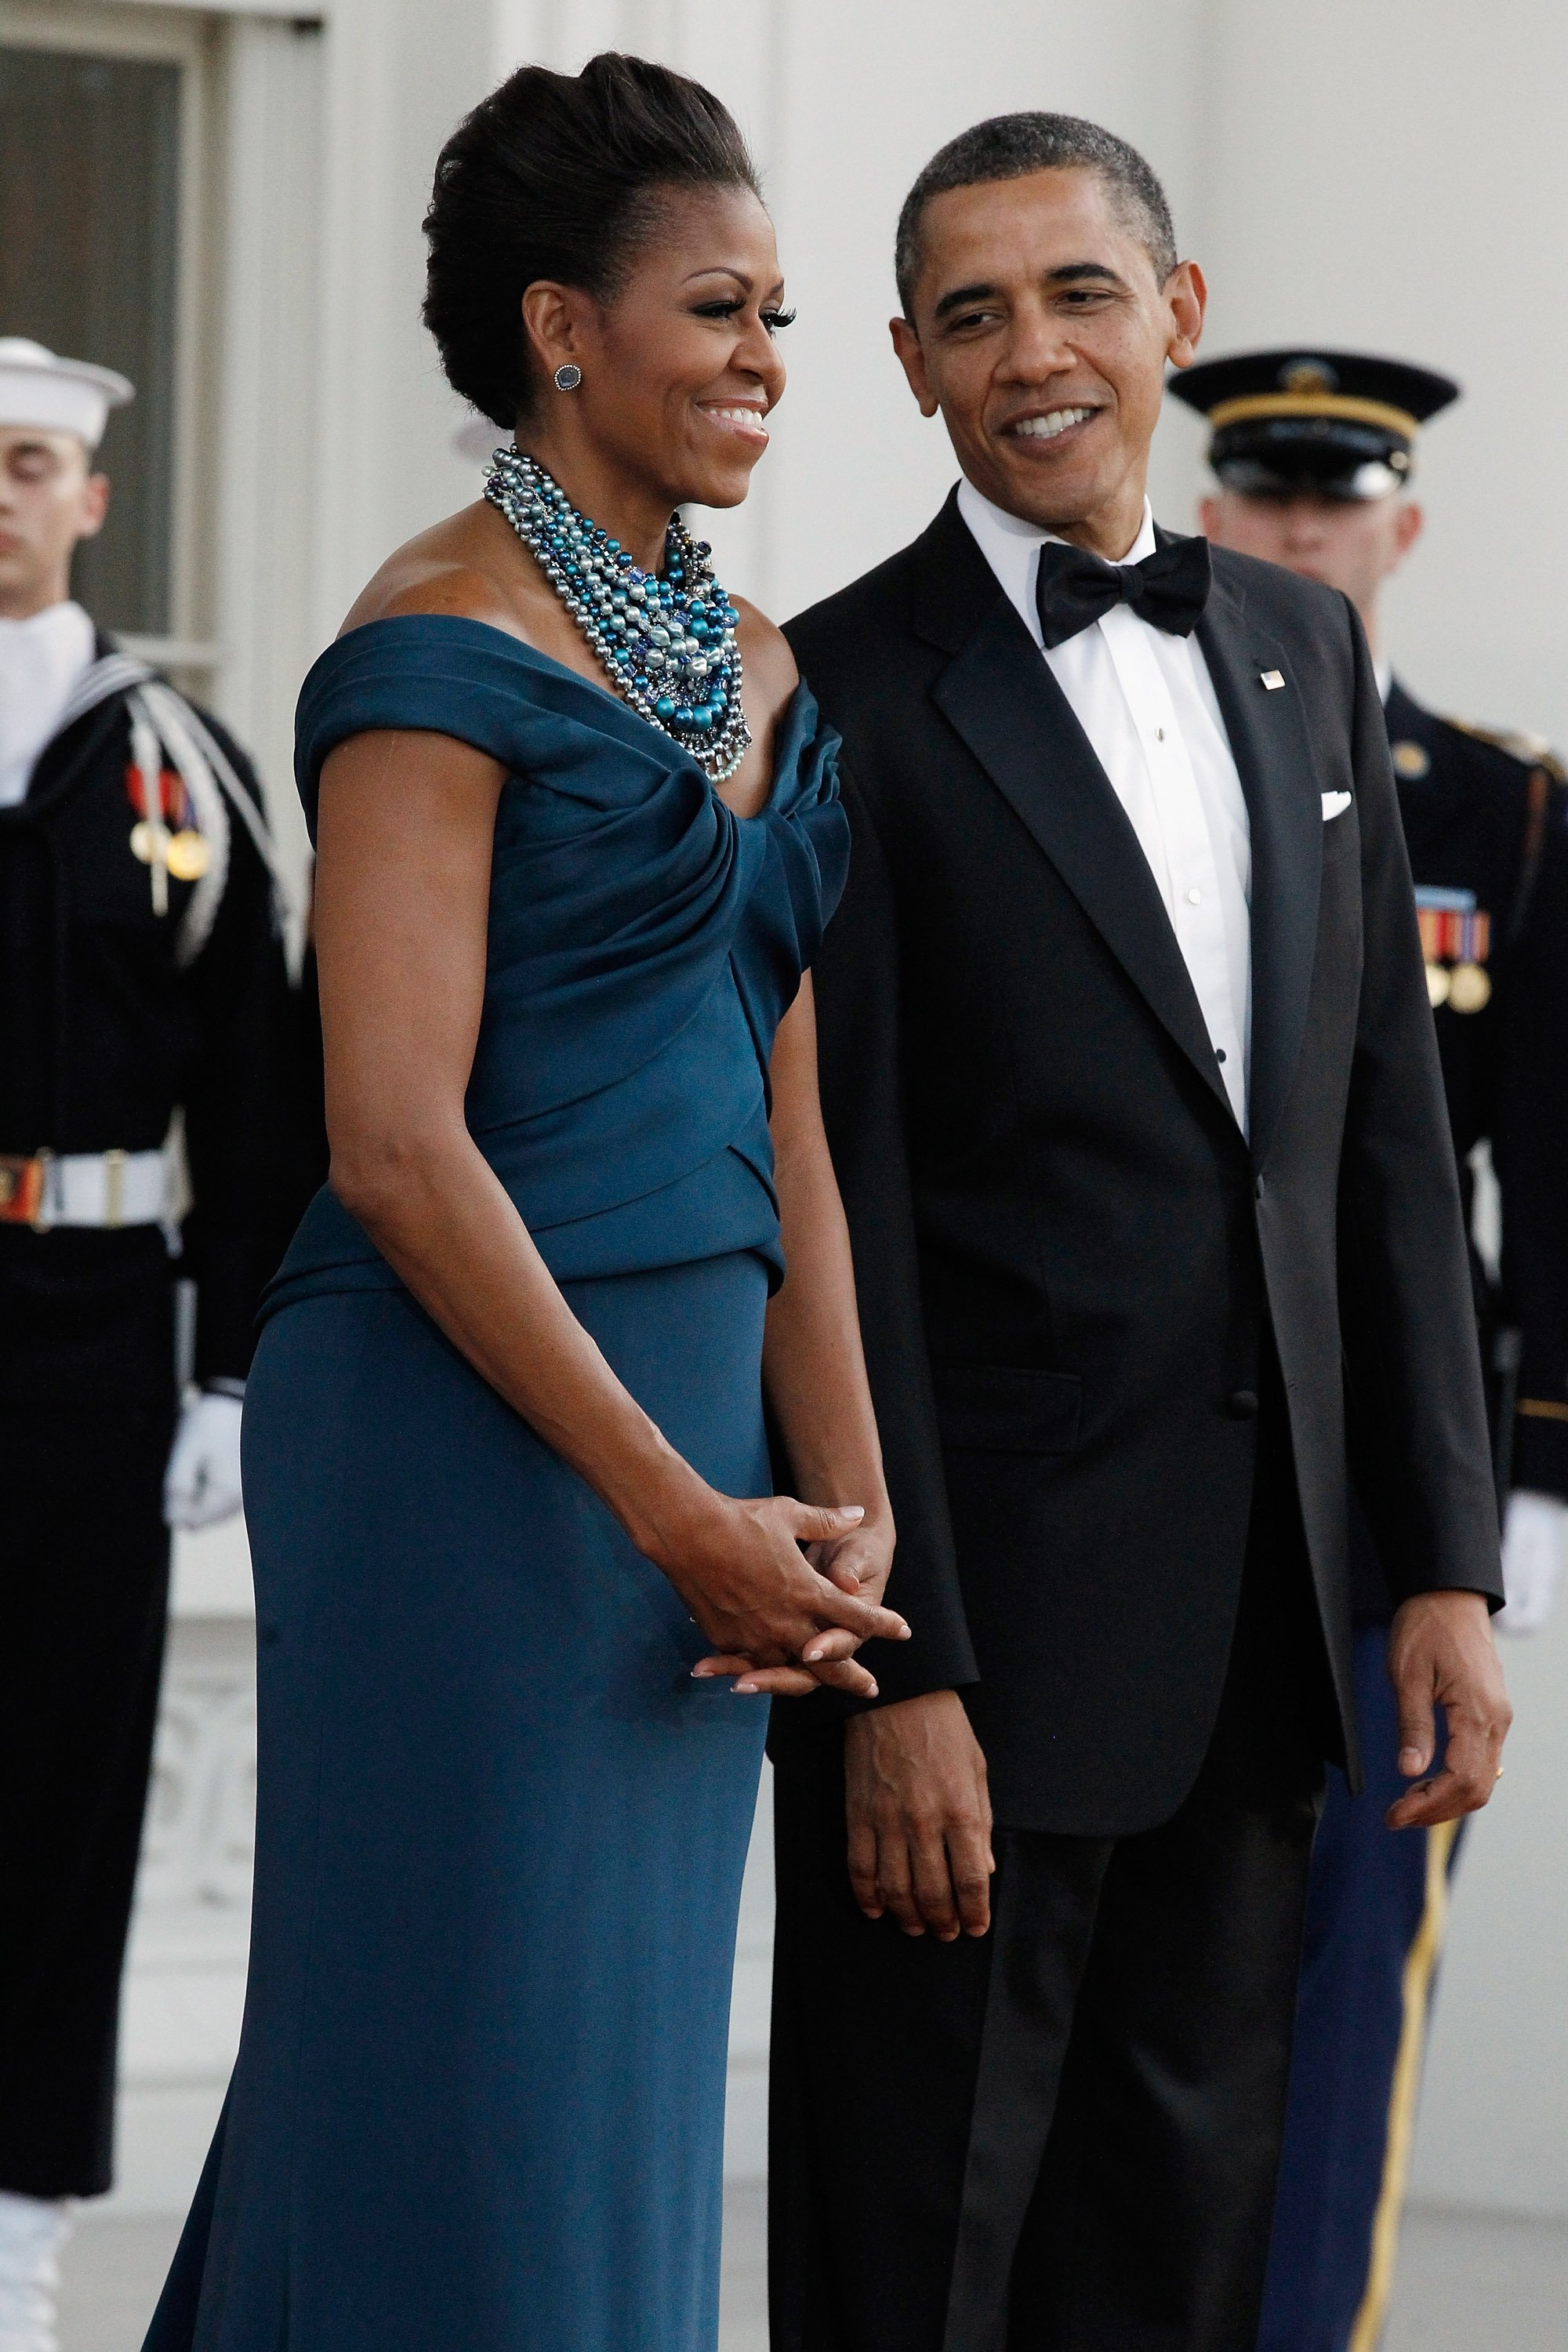 First Lady Michelle and U.S. President Barack Obama await the arrival of British Prime Minister David Cameron and his wife Samantha at the White House on March 14, 2012 l Source: Getty Images